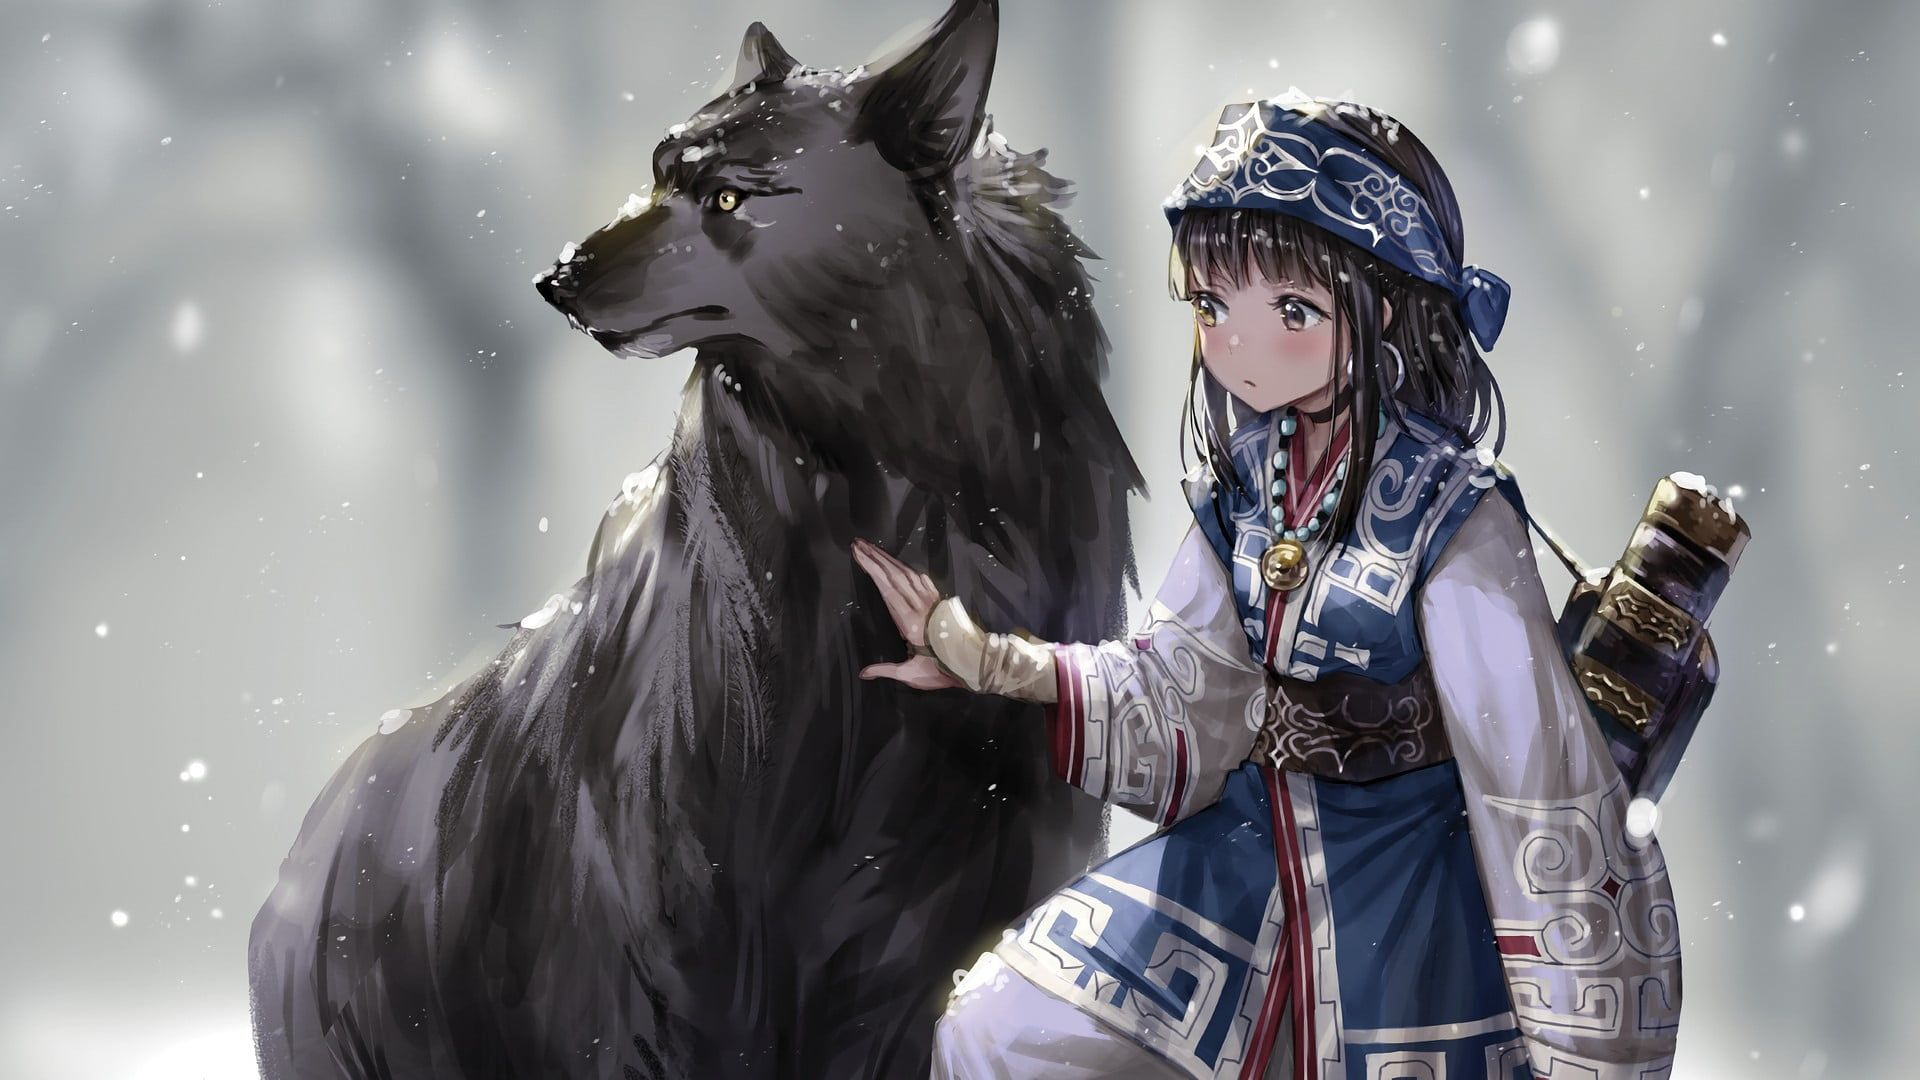 Brown Haired Girl Anime Character Illustration Fantasy Art Anime Snow Wolf Winter Anime Girls Original Charac Character Illustration Anime Girls Characters